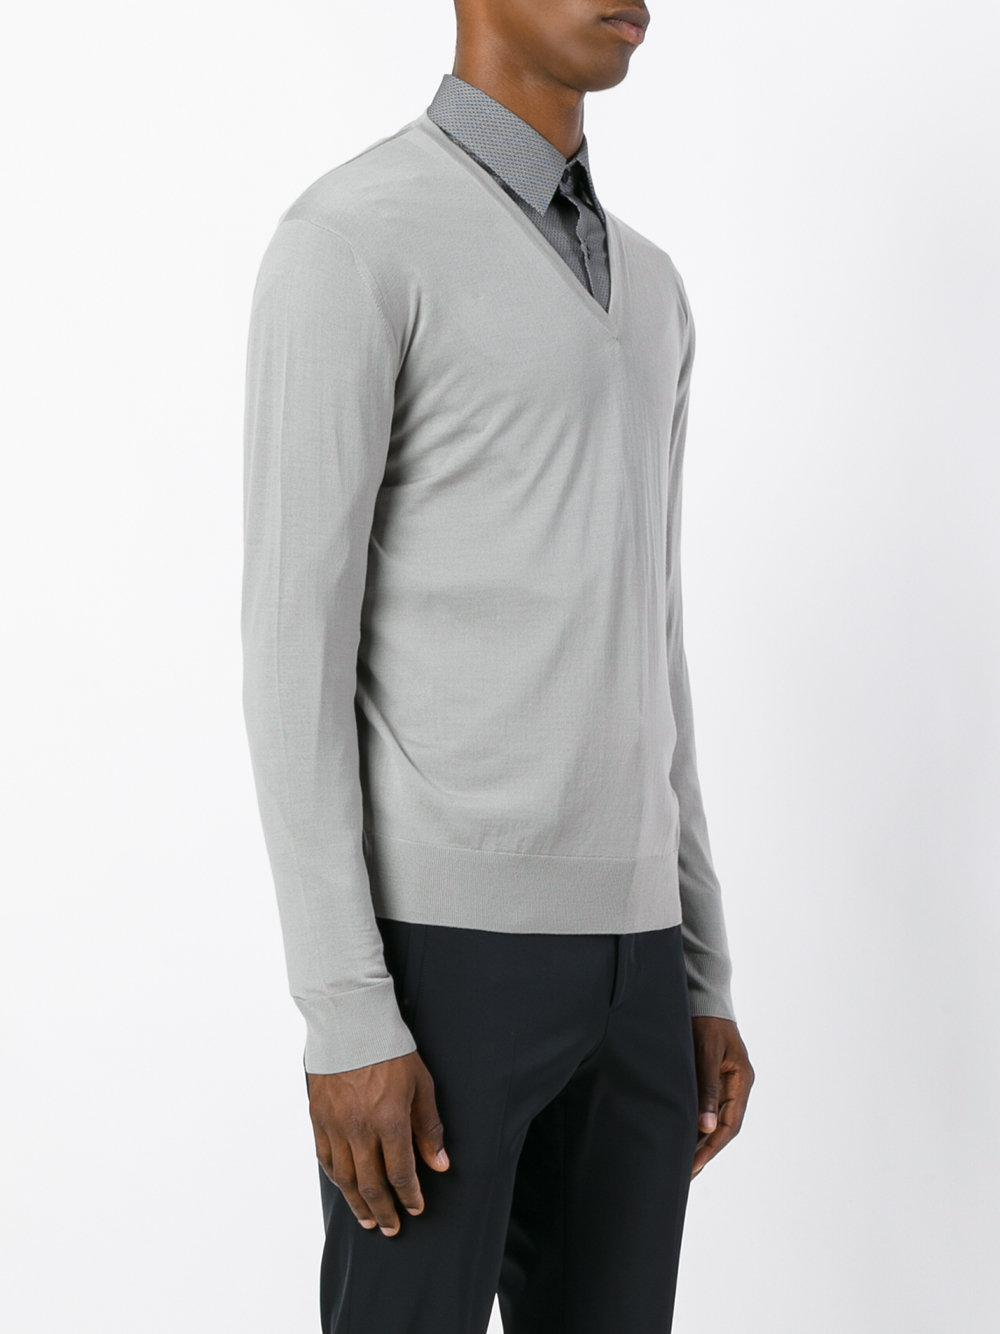 5723feb84 Lyst - Prada Light V-neck Sweater in Gray for Men